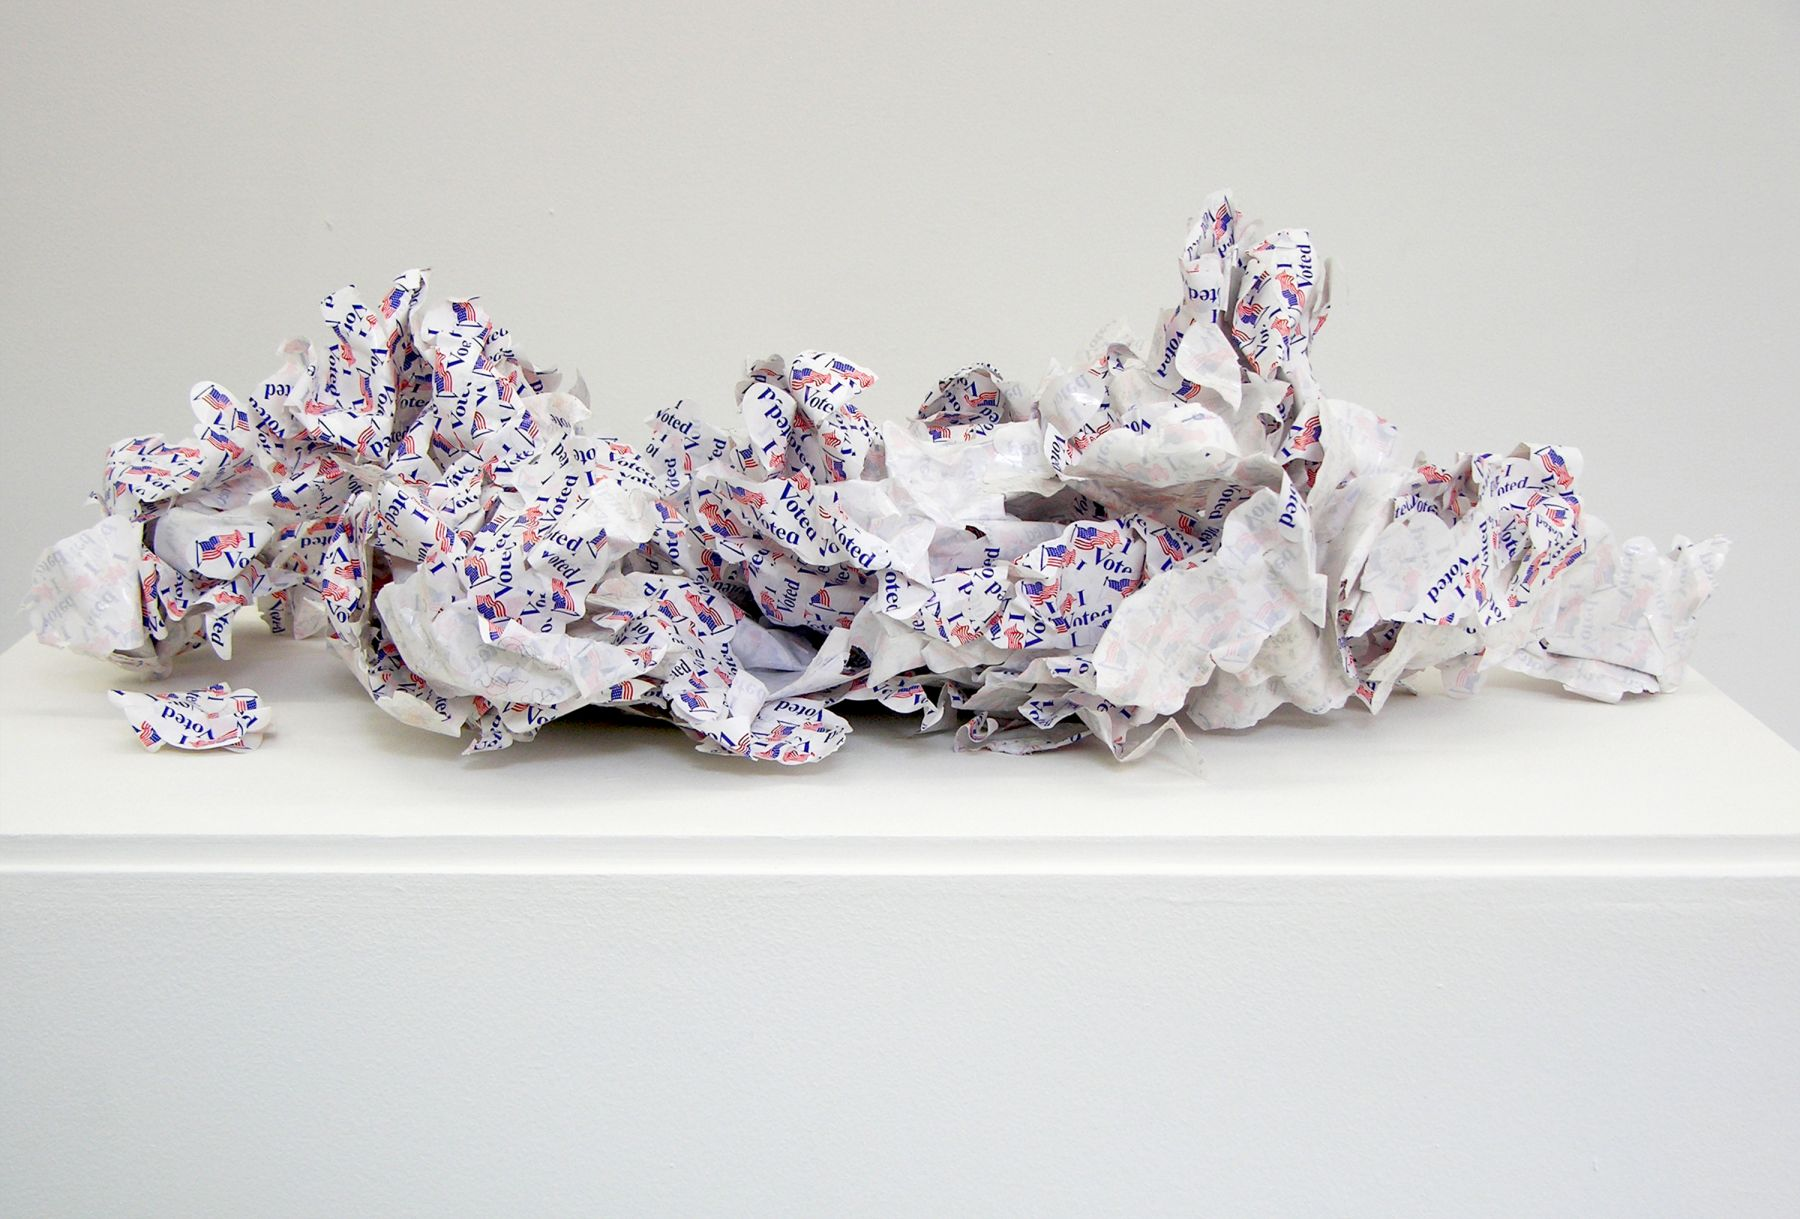 WILMER WILSON  Shed Skin (I voted) paper, adhesive, DNA, dimensions variable